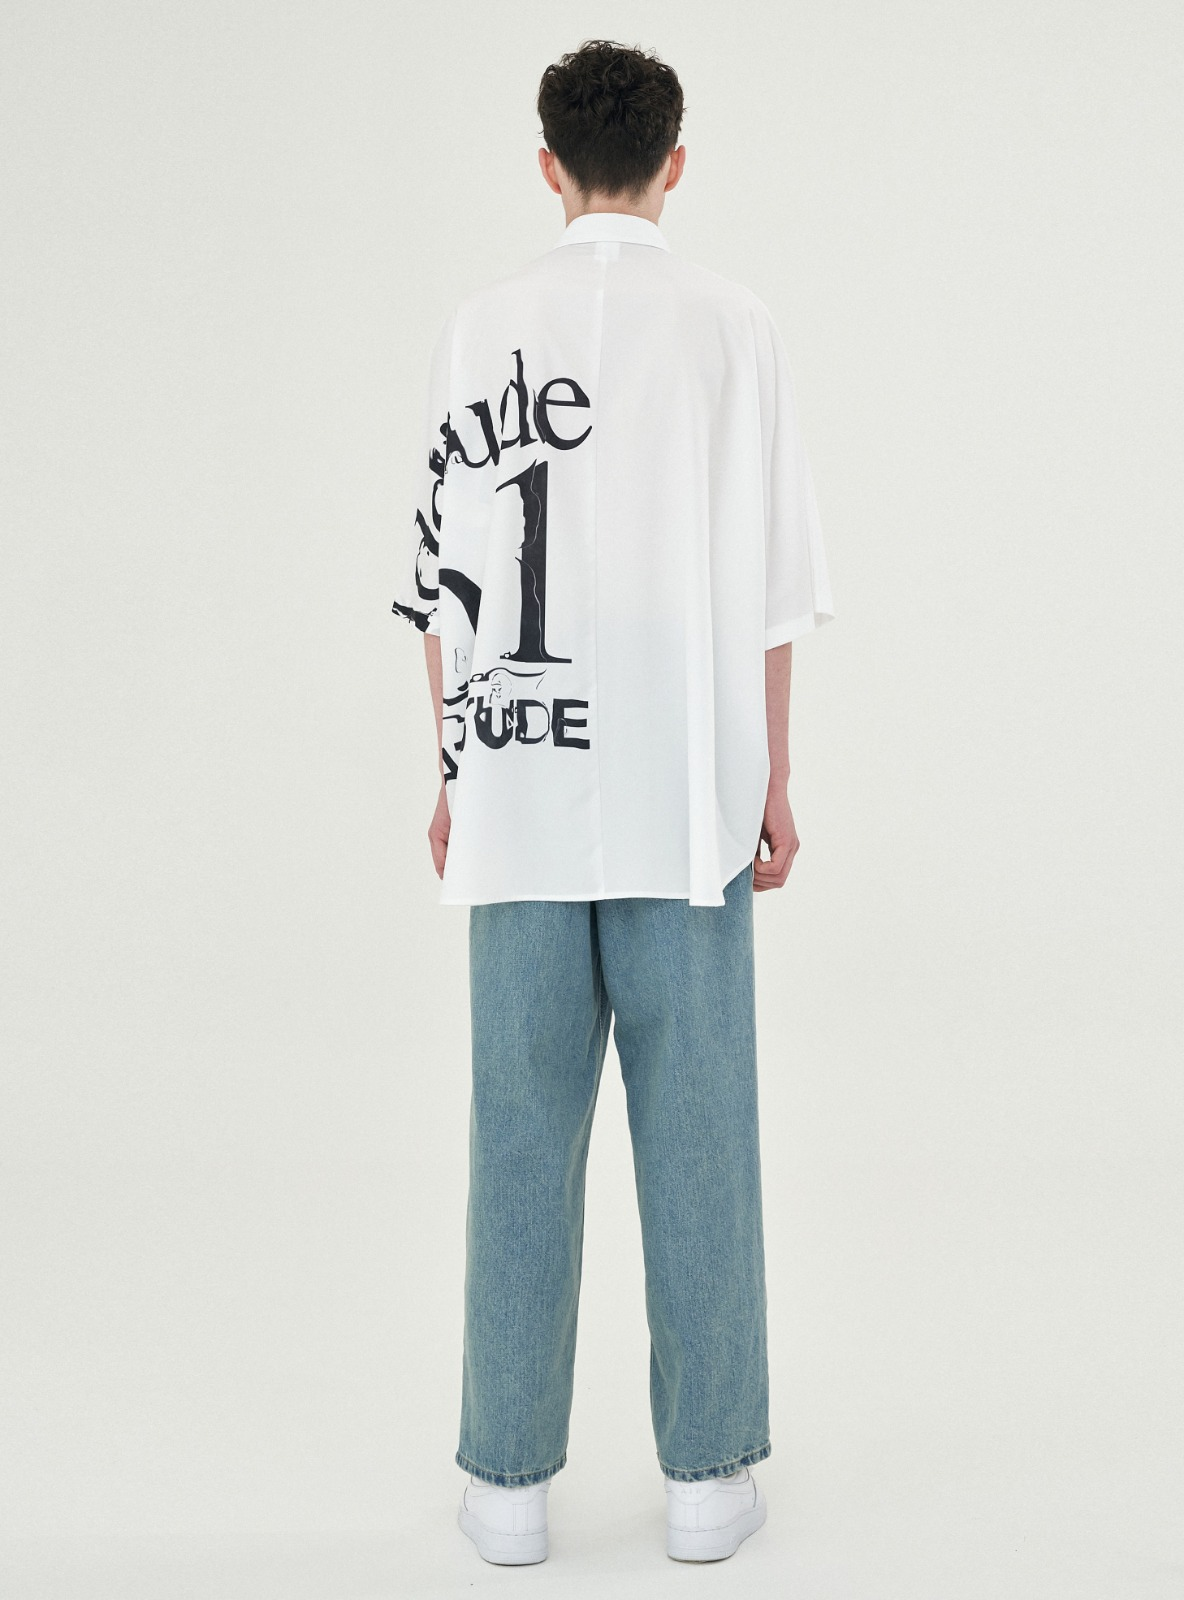 ADDITUDE No.1 AVANTGARDE SHIRT WHITE